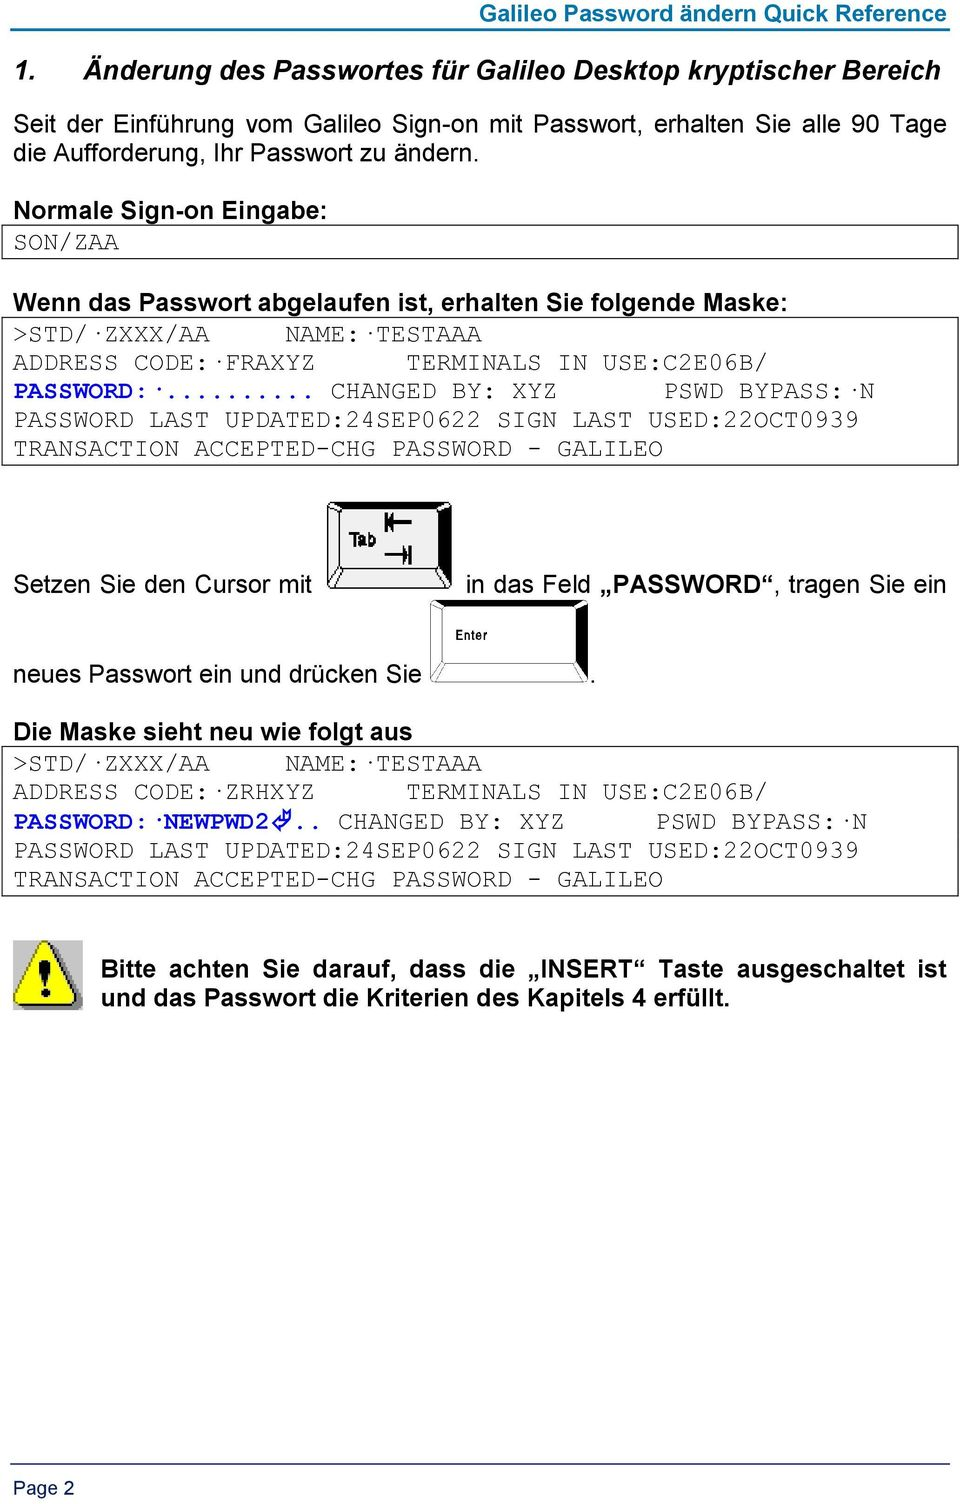 Normale Sign-on Eingabe: SON/ZAA Wenn das Passwort abgelaufen ist, erhalten Sie folgende Maske: >STD/ ZXXX/AA NAME: TESTAAA ADDRESS CODE: FRAXYZ TERMINALS IN USE:C2E06B/ PASSWORD:.